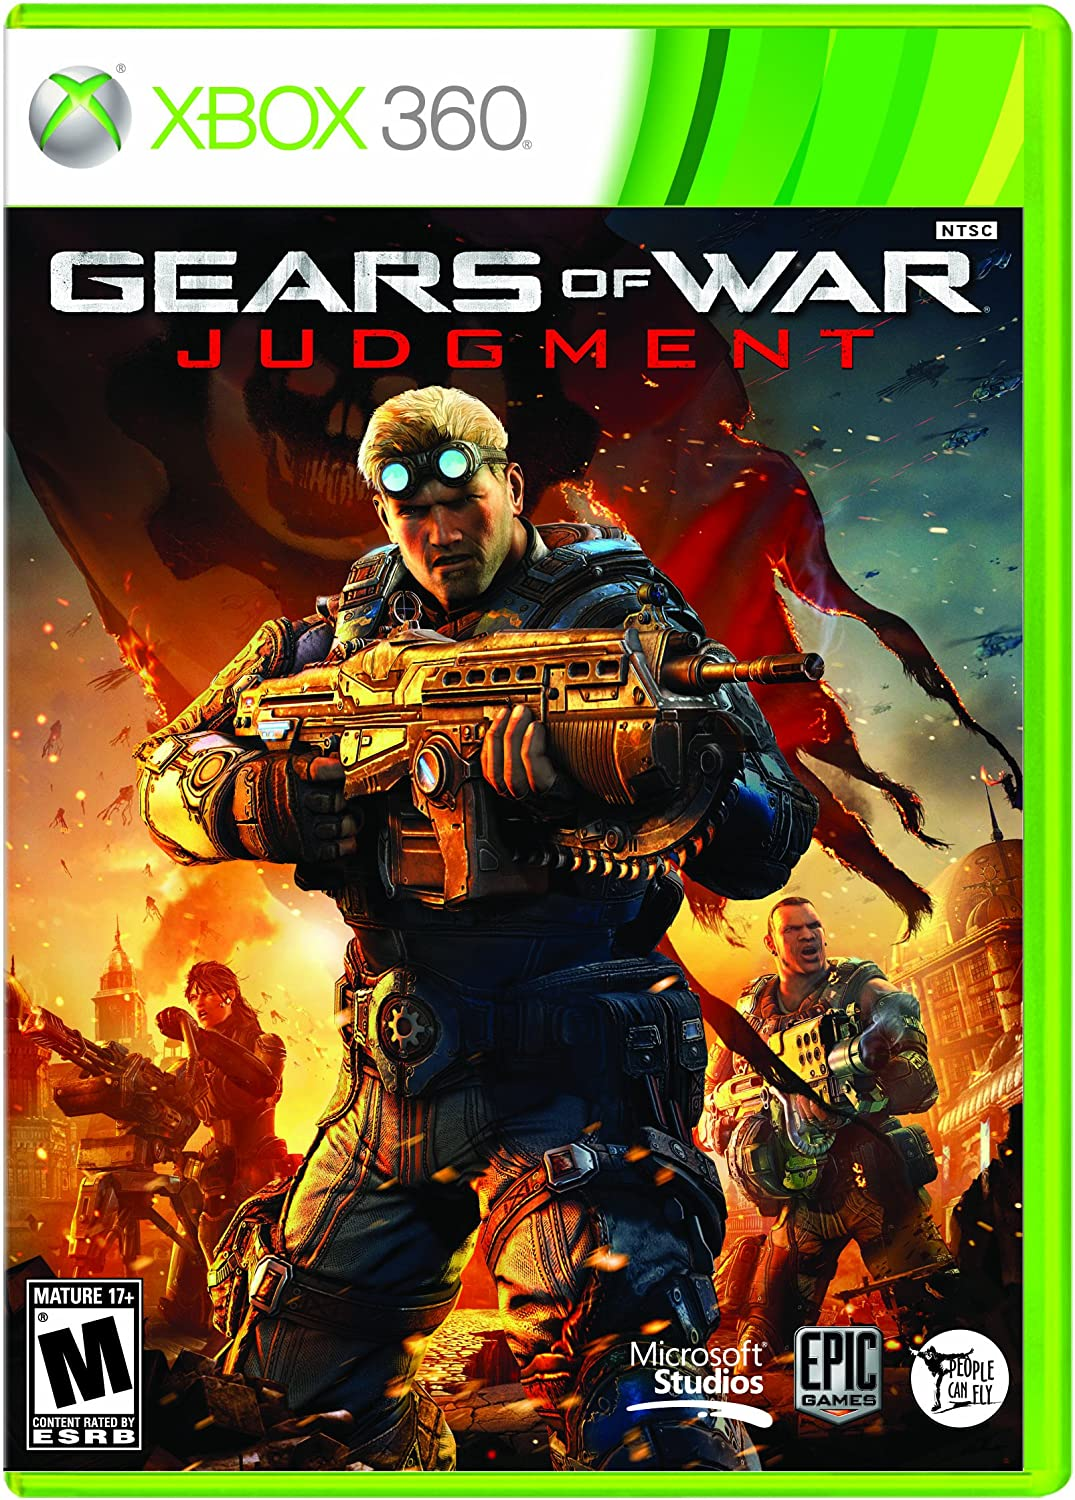 Gears of war 3 save game 100 xbox 360 xp